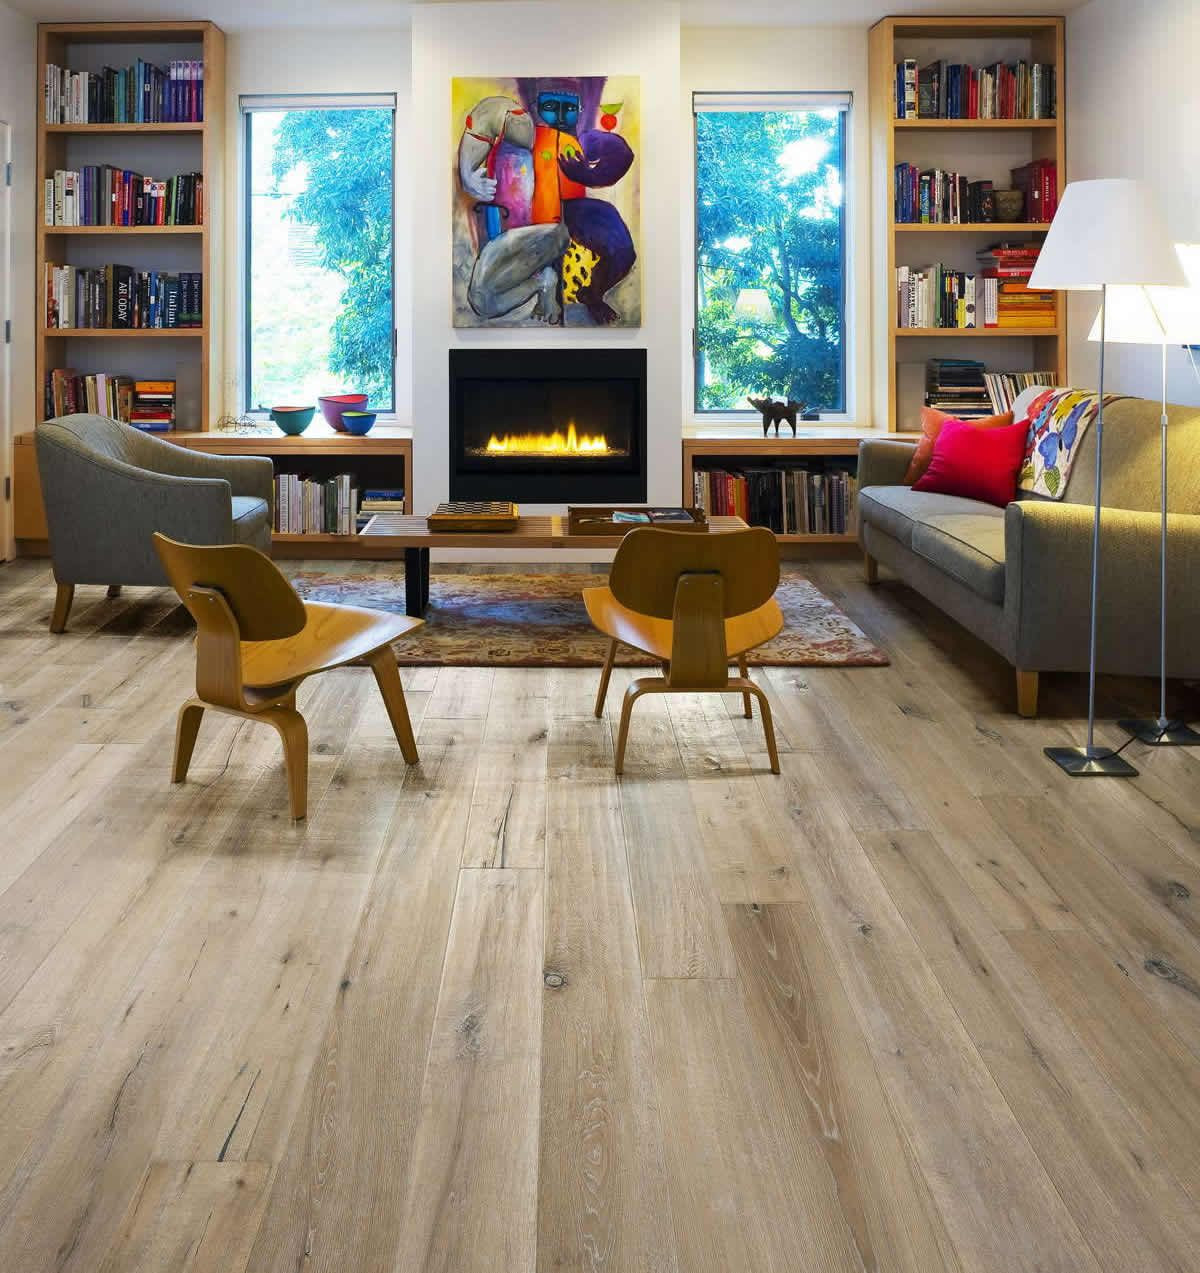 how to care for engineered hardwood floors of kahrs artisan oak linen engineered wood flooring pinterest with bring light and life into your home with the beautiful kahrs artisan oak linen engineered wood flooring from flooringsupplies co uk